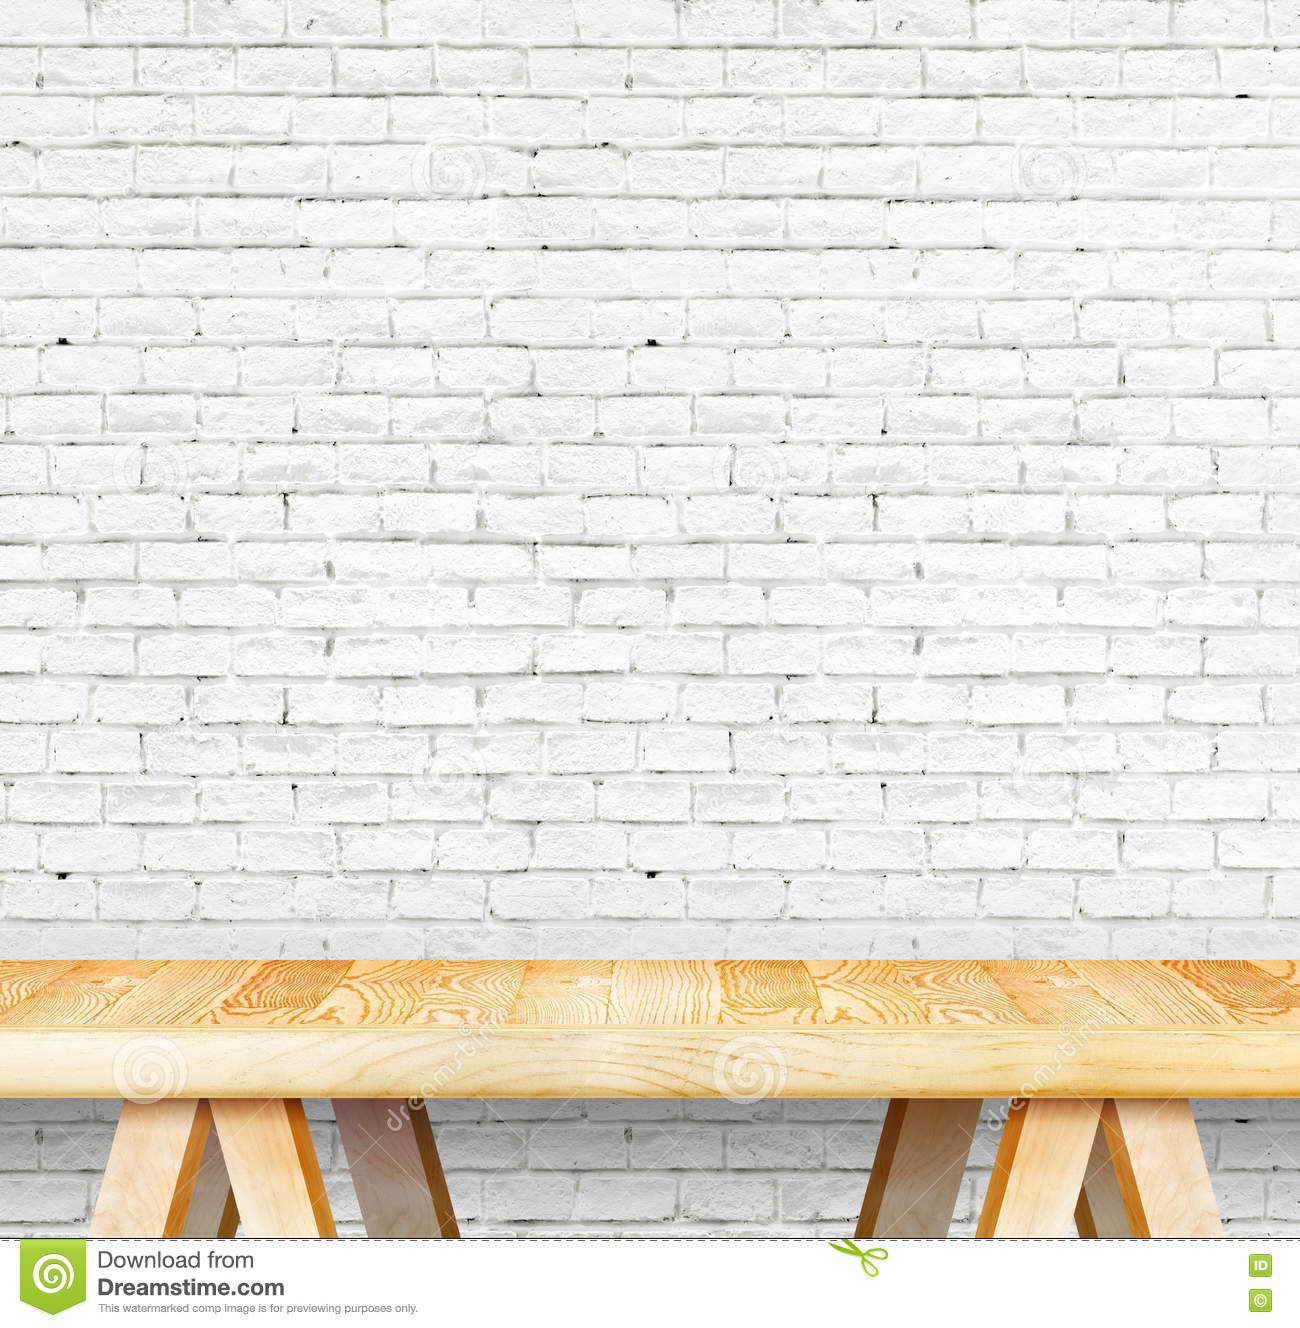 Empty Wood Modern Table And Grunge White Brick Wall In